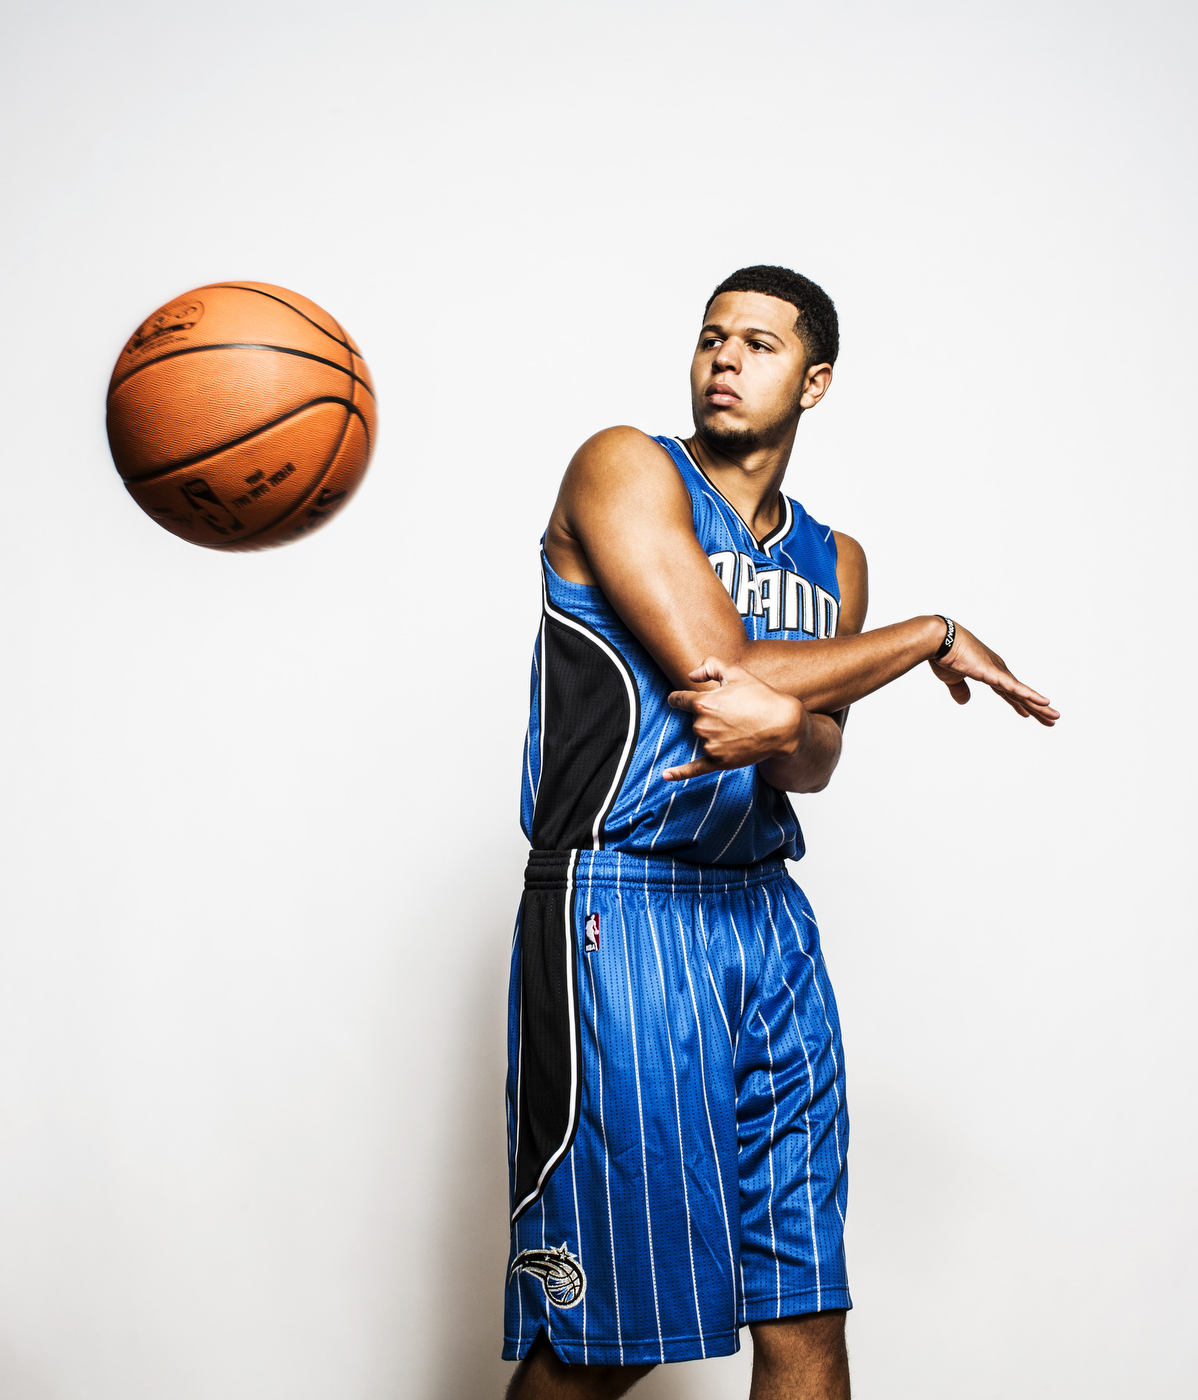 NBA_ROOKIE_SHOOT_080815_LAHAM49553